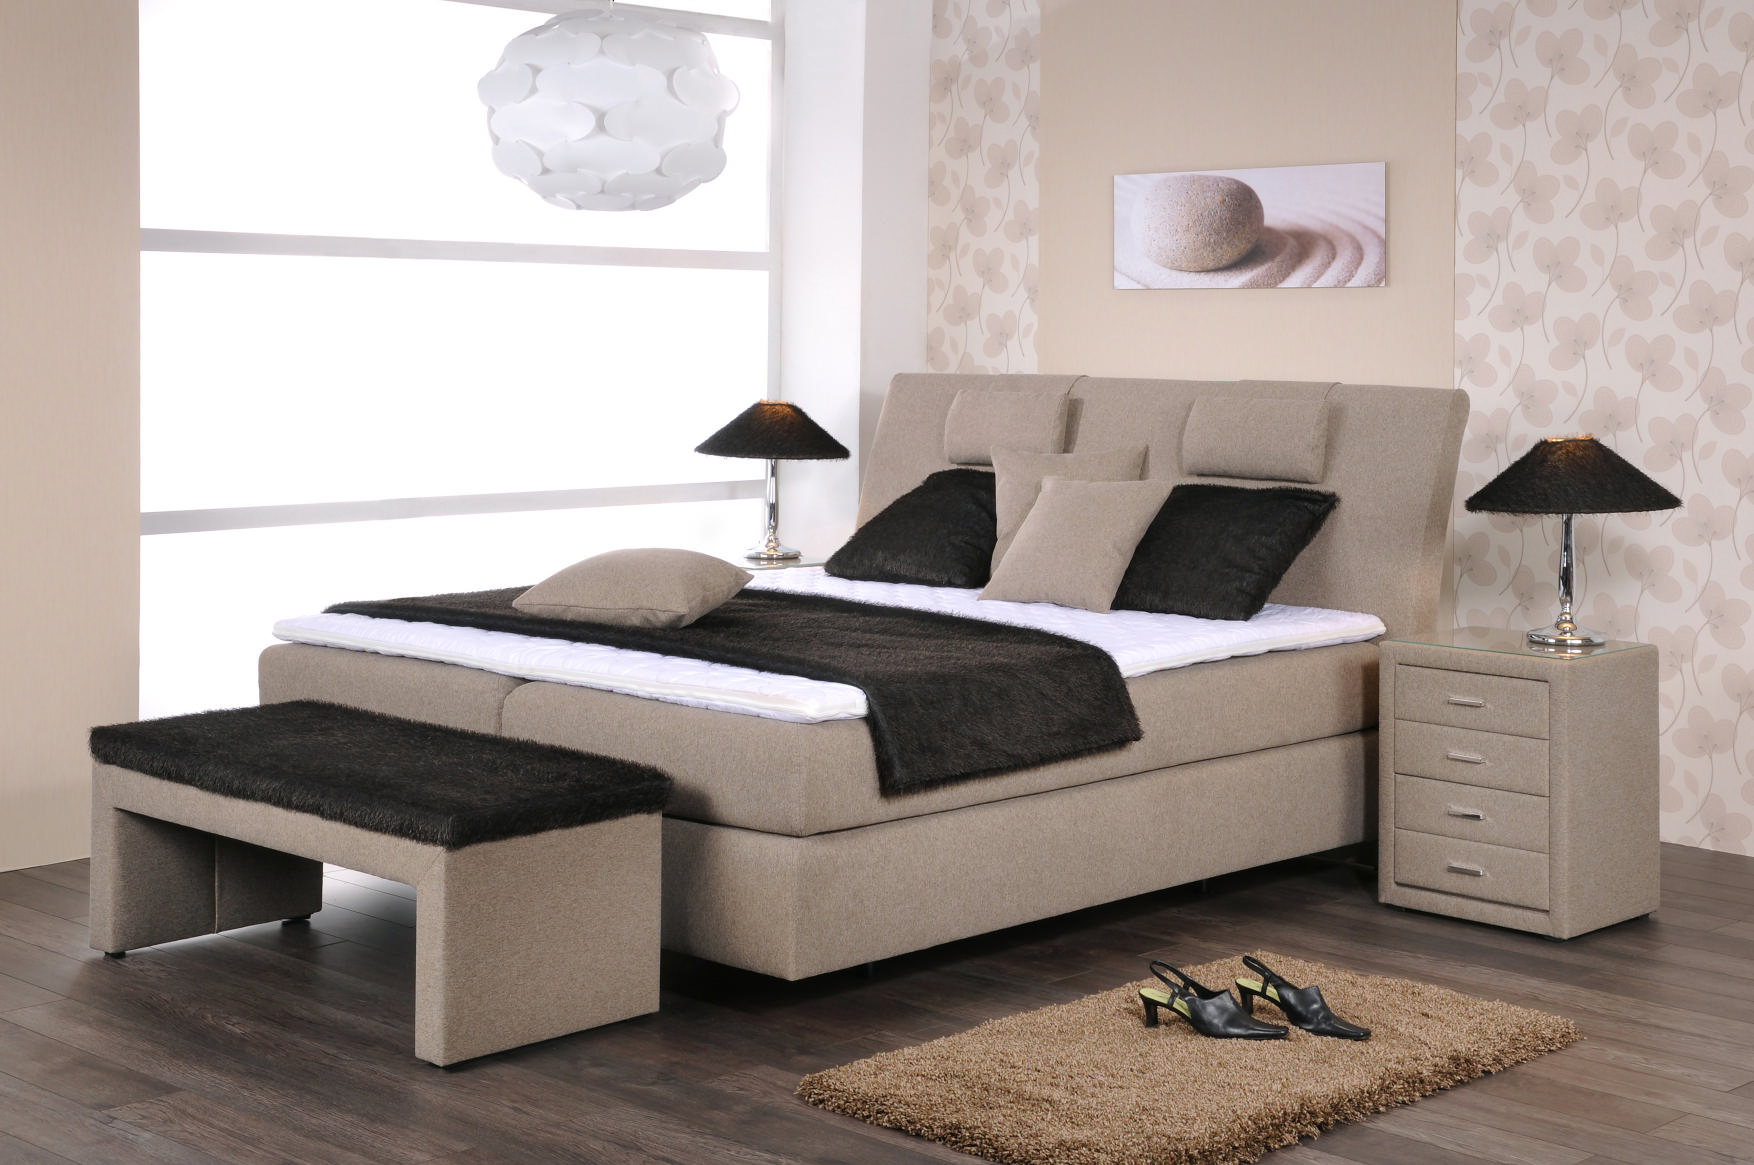 BELCANTO ROYAL Boxspringbett 2020